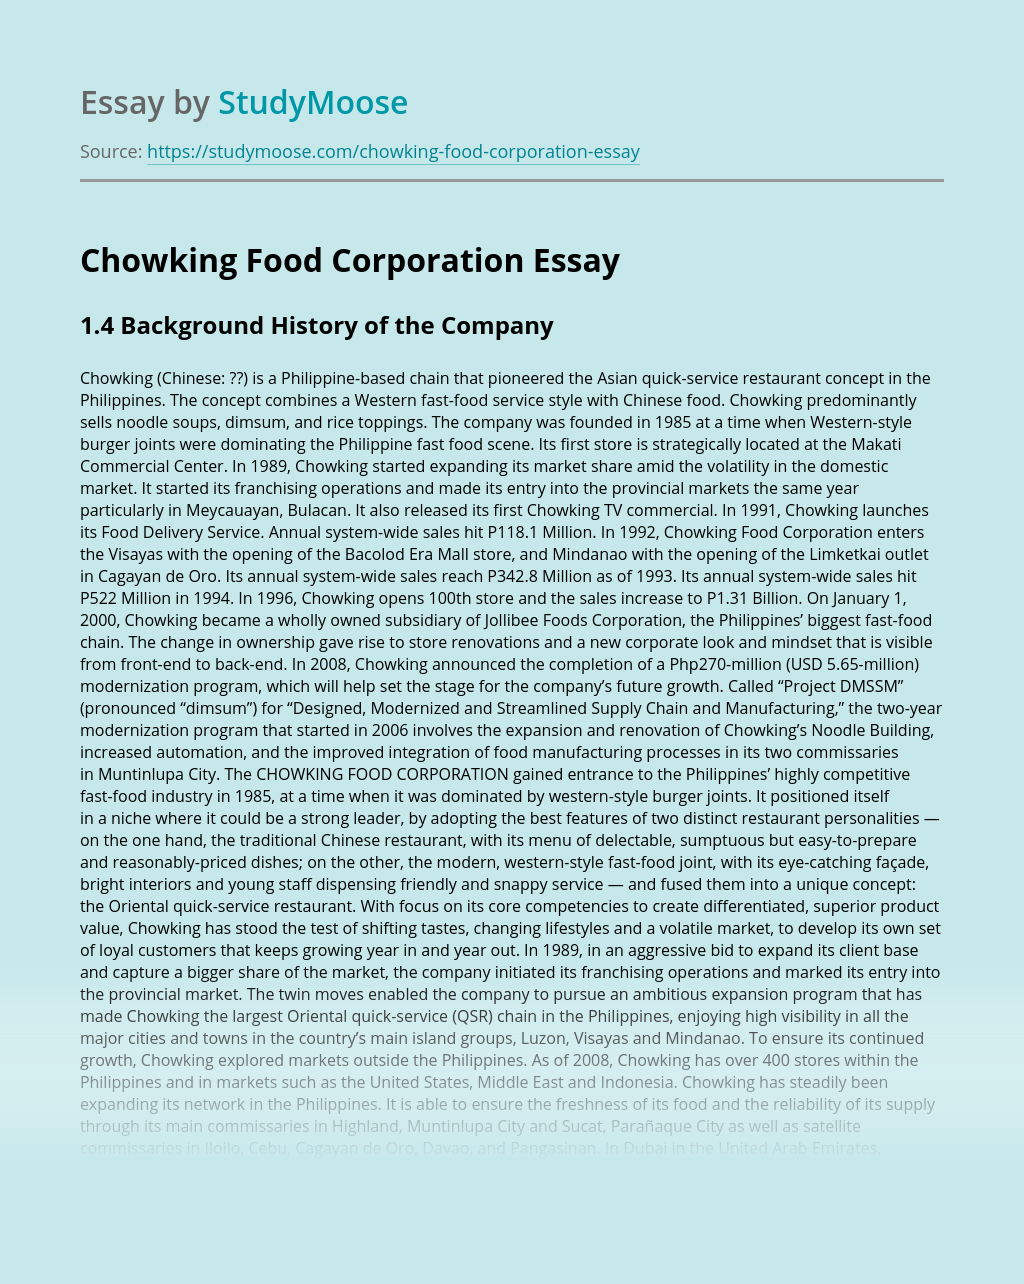 Chowking Food Corporation